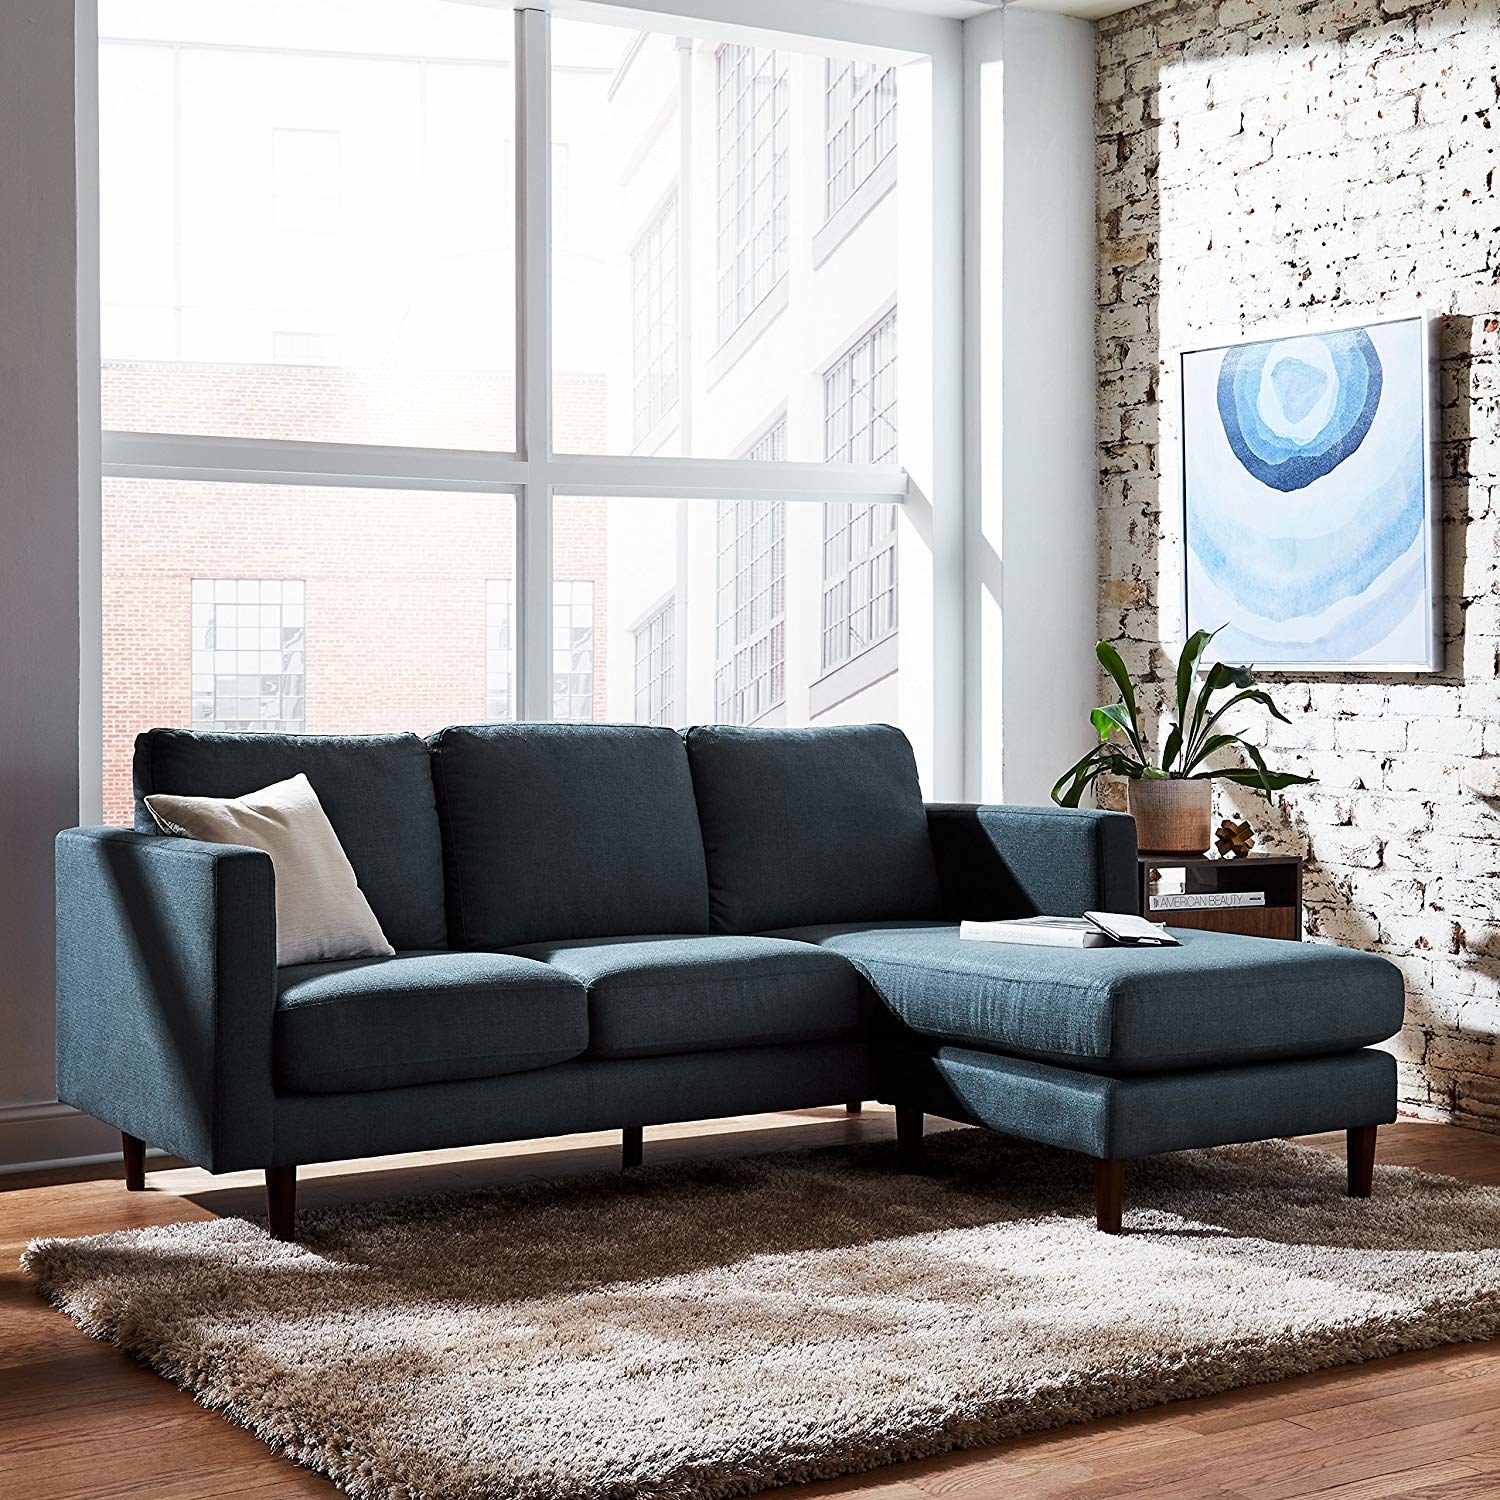 The sectional sofa in denim